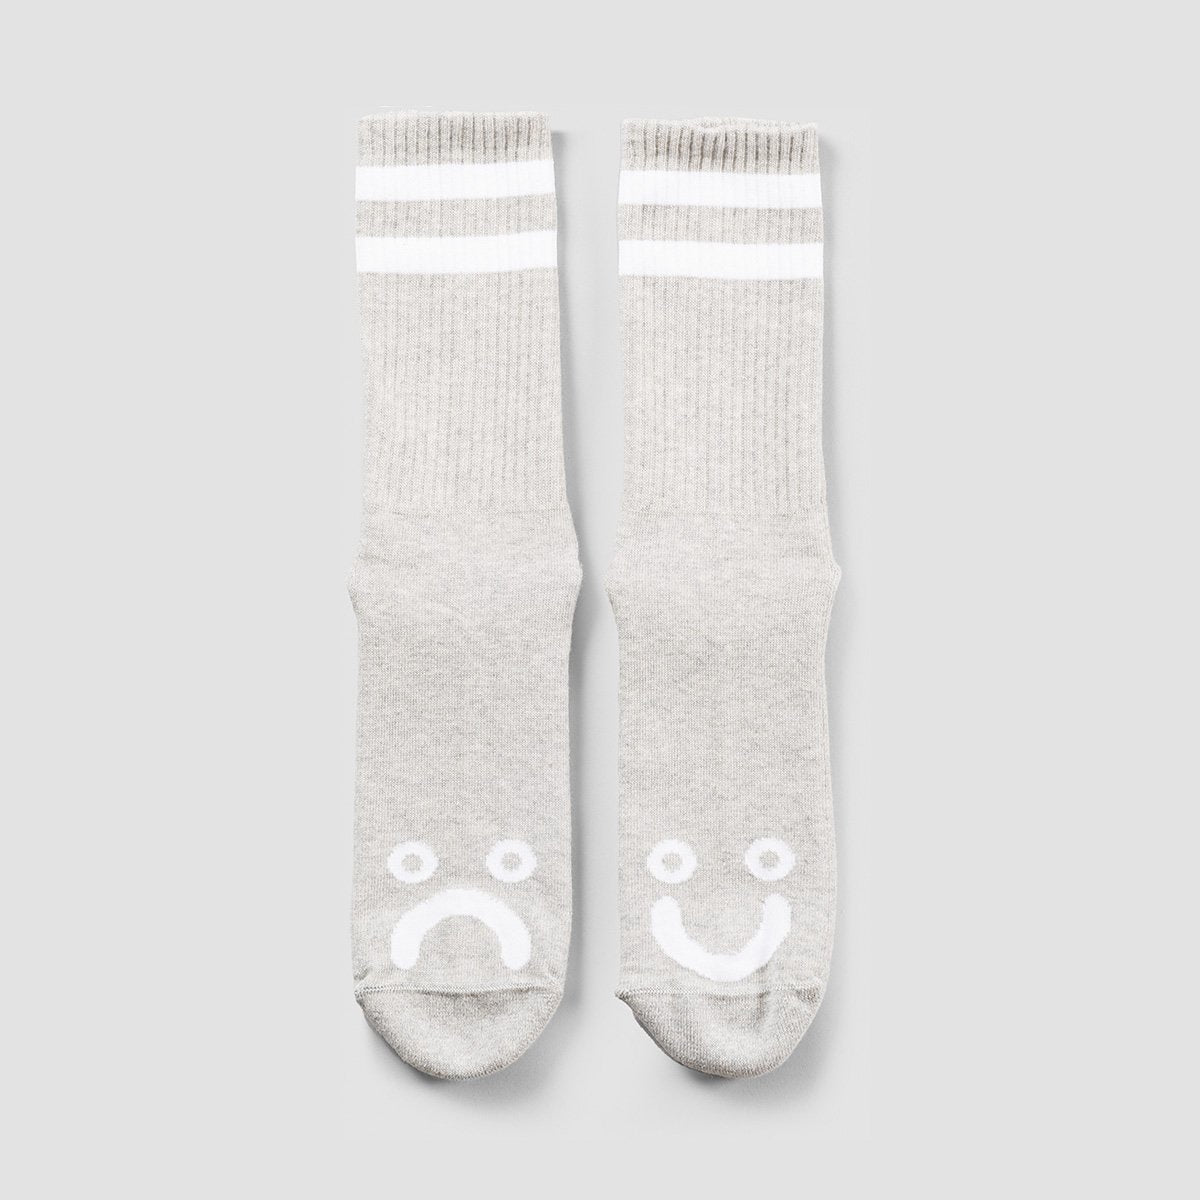 Polar Happy Sad Socks Heather Grey- Unisex - Accessories